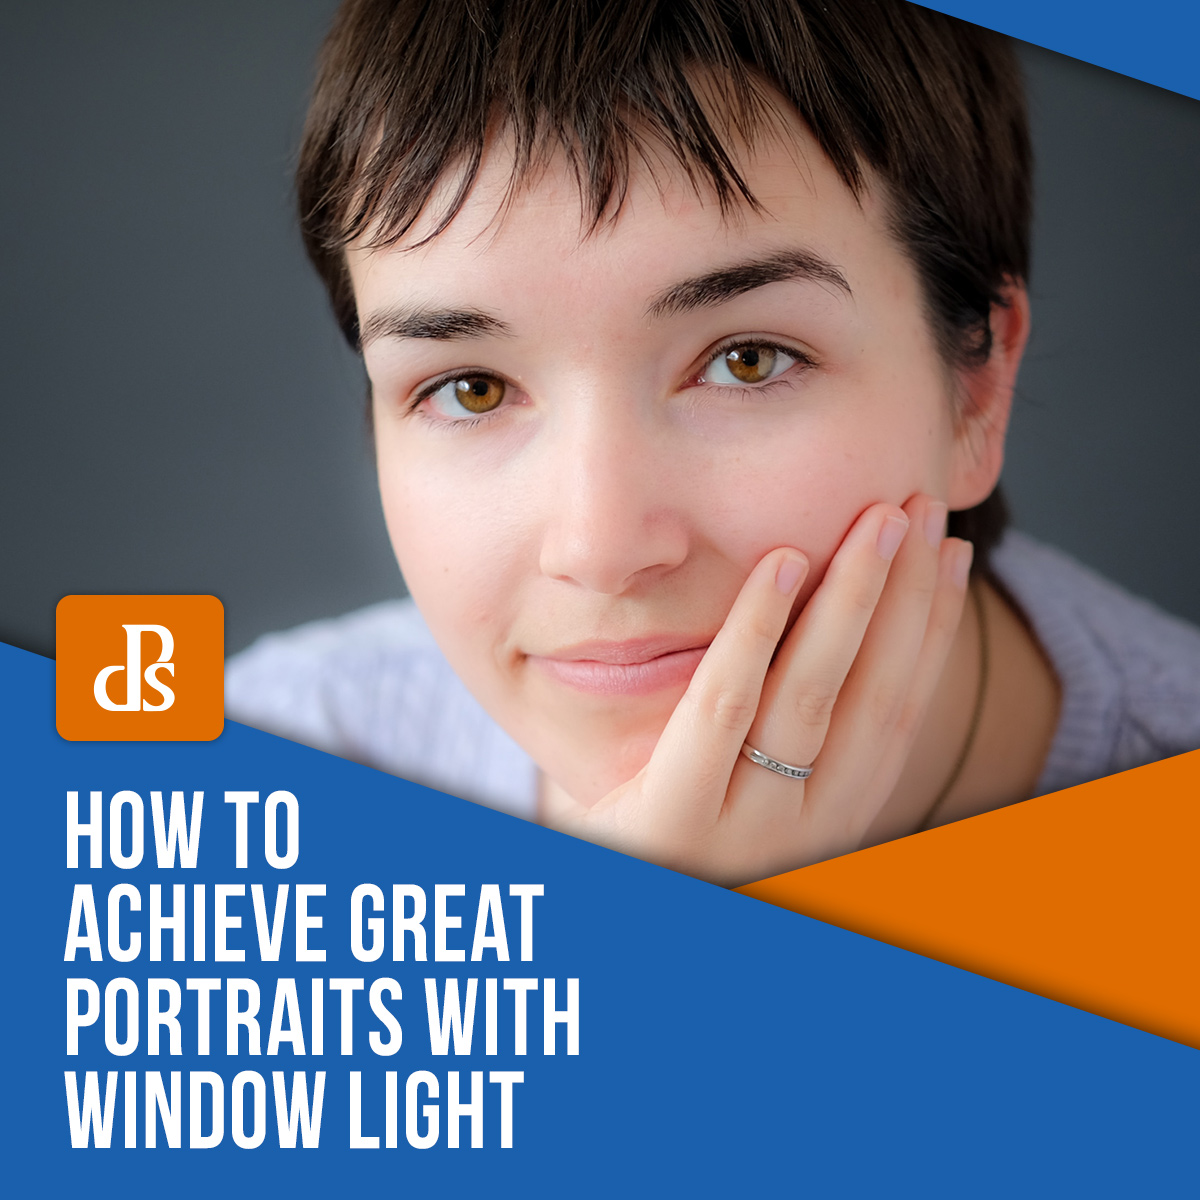 dps-great-portraits-with-window-light